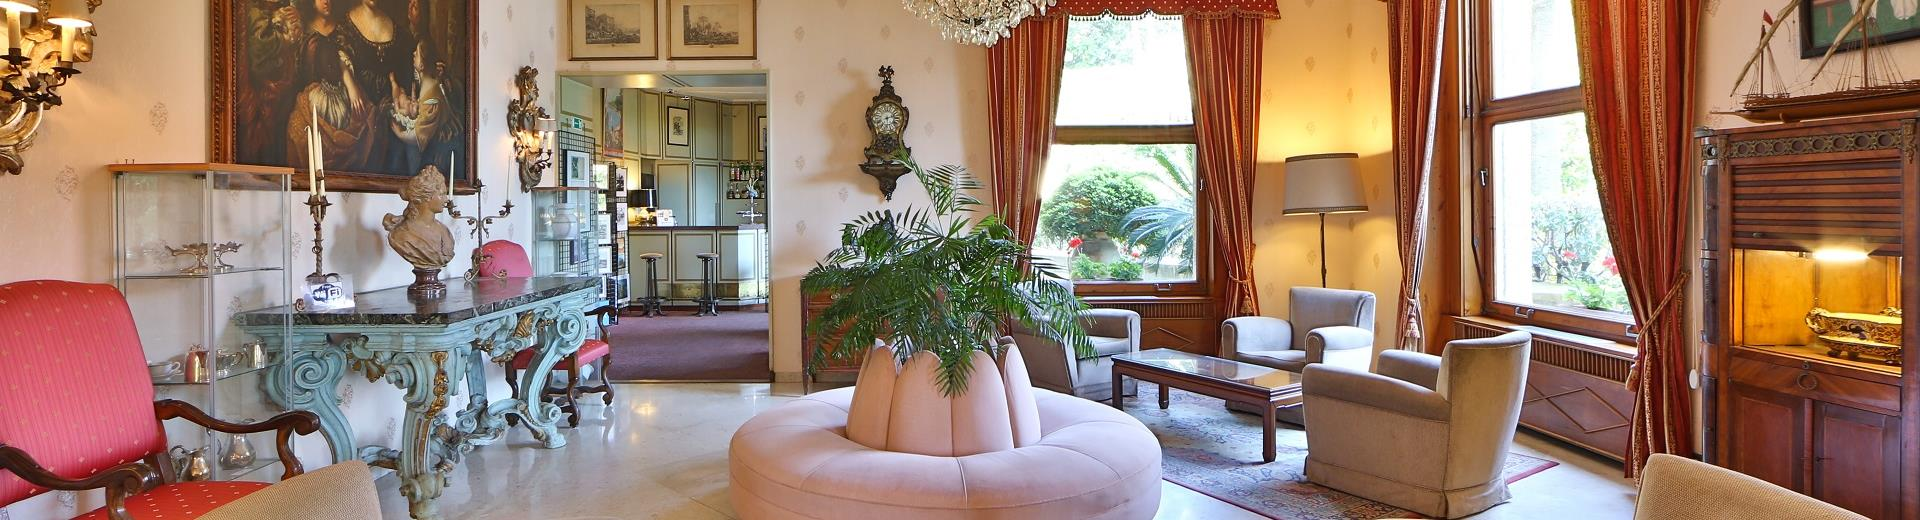 History and a tradition of 100 years at BW Hotel Regina Elena Santa Margherita Ligure